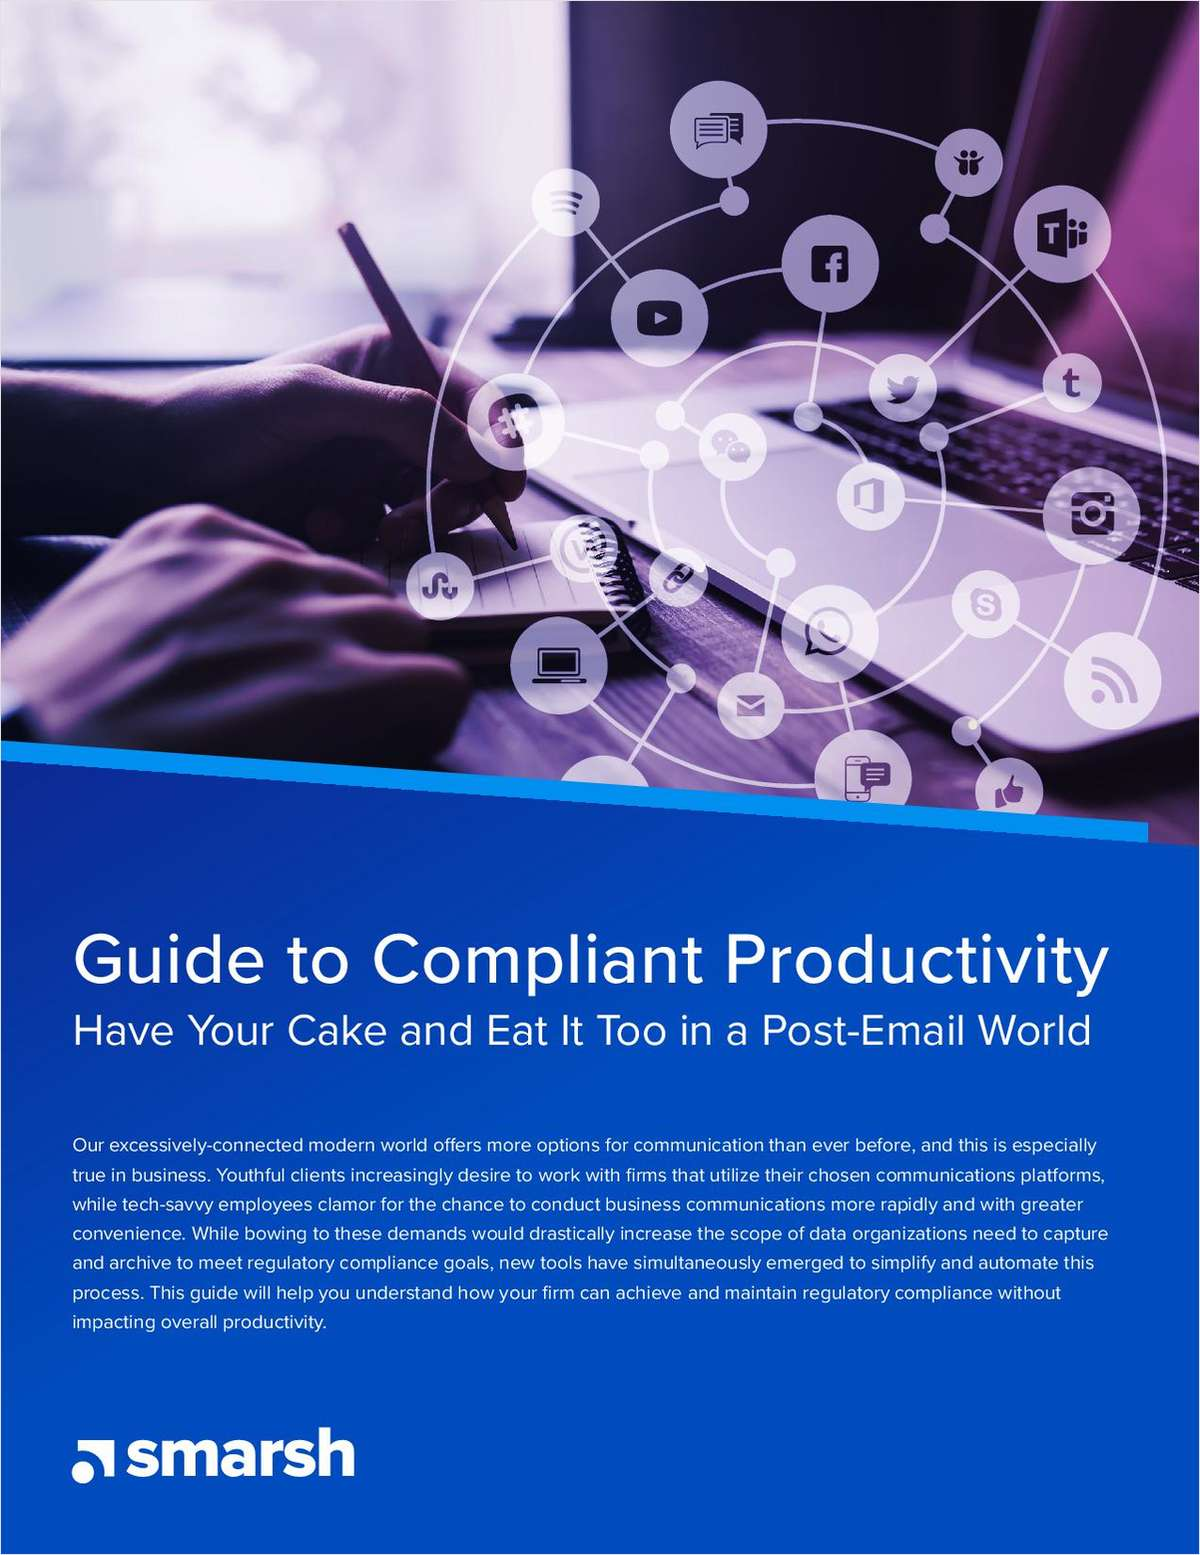 Guide to Compliant Productivity: Have Your Cake and Eat It Too in a Post-Email World